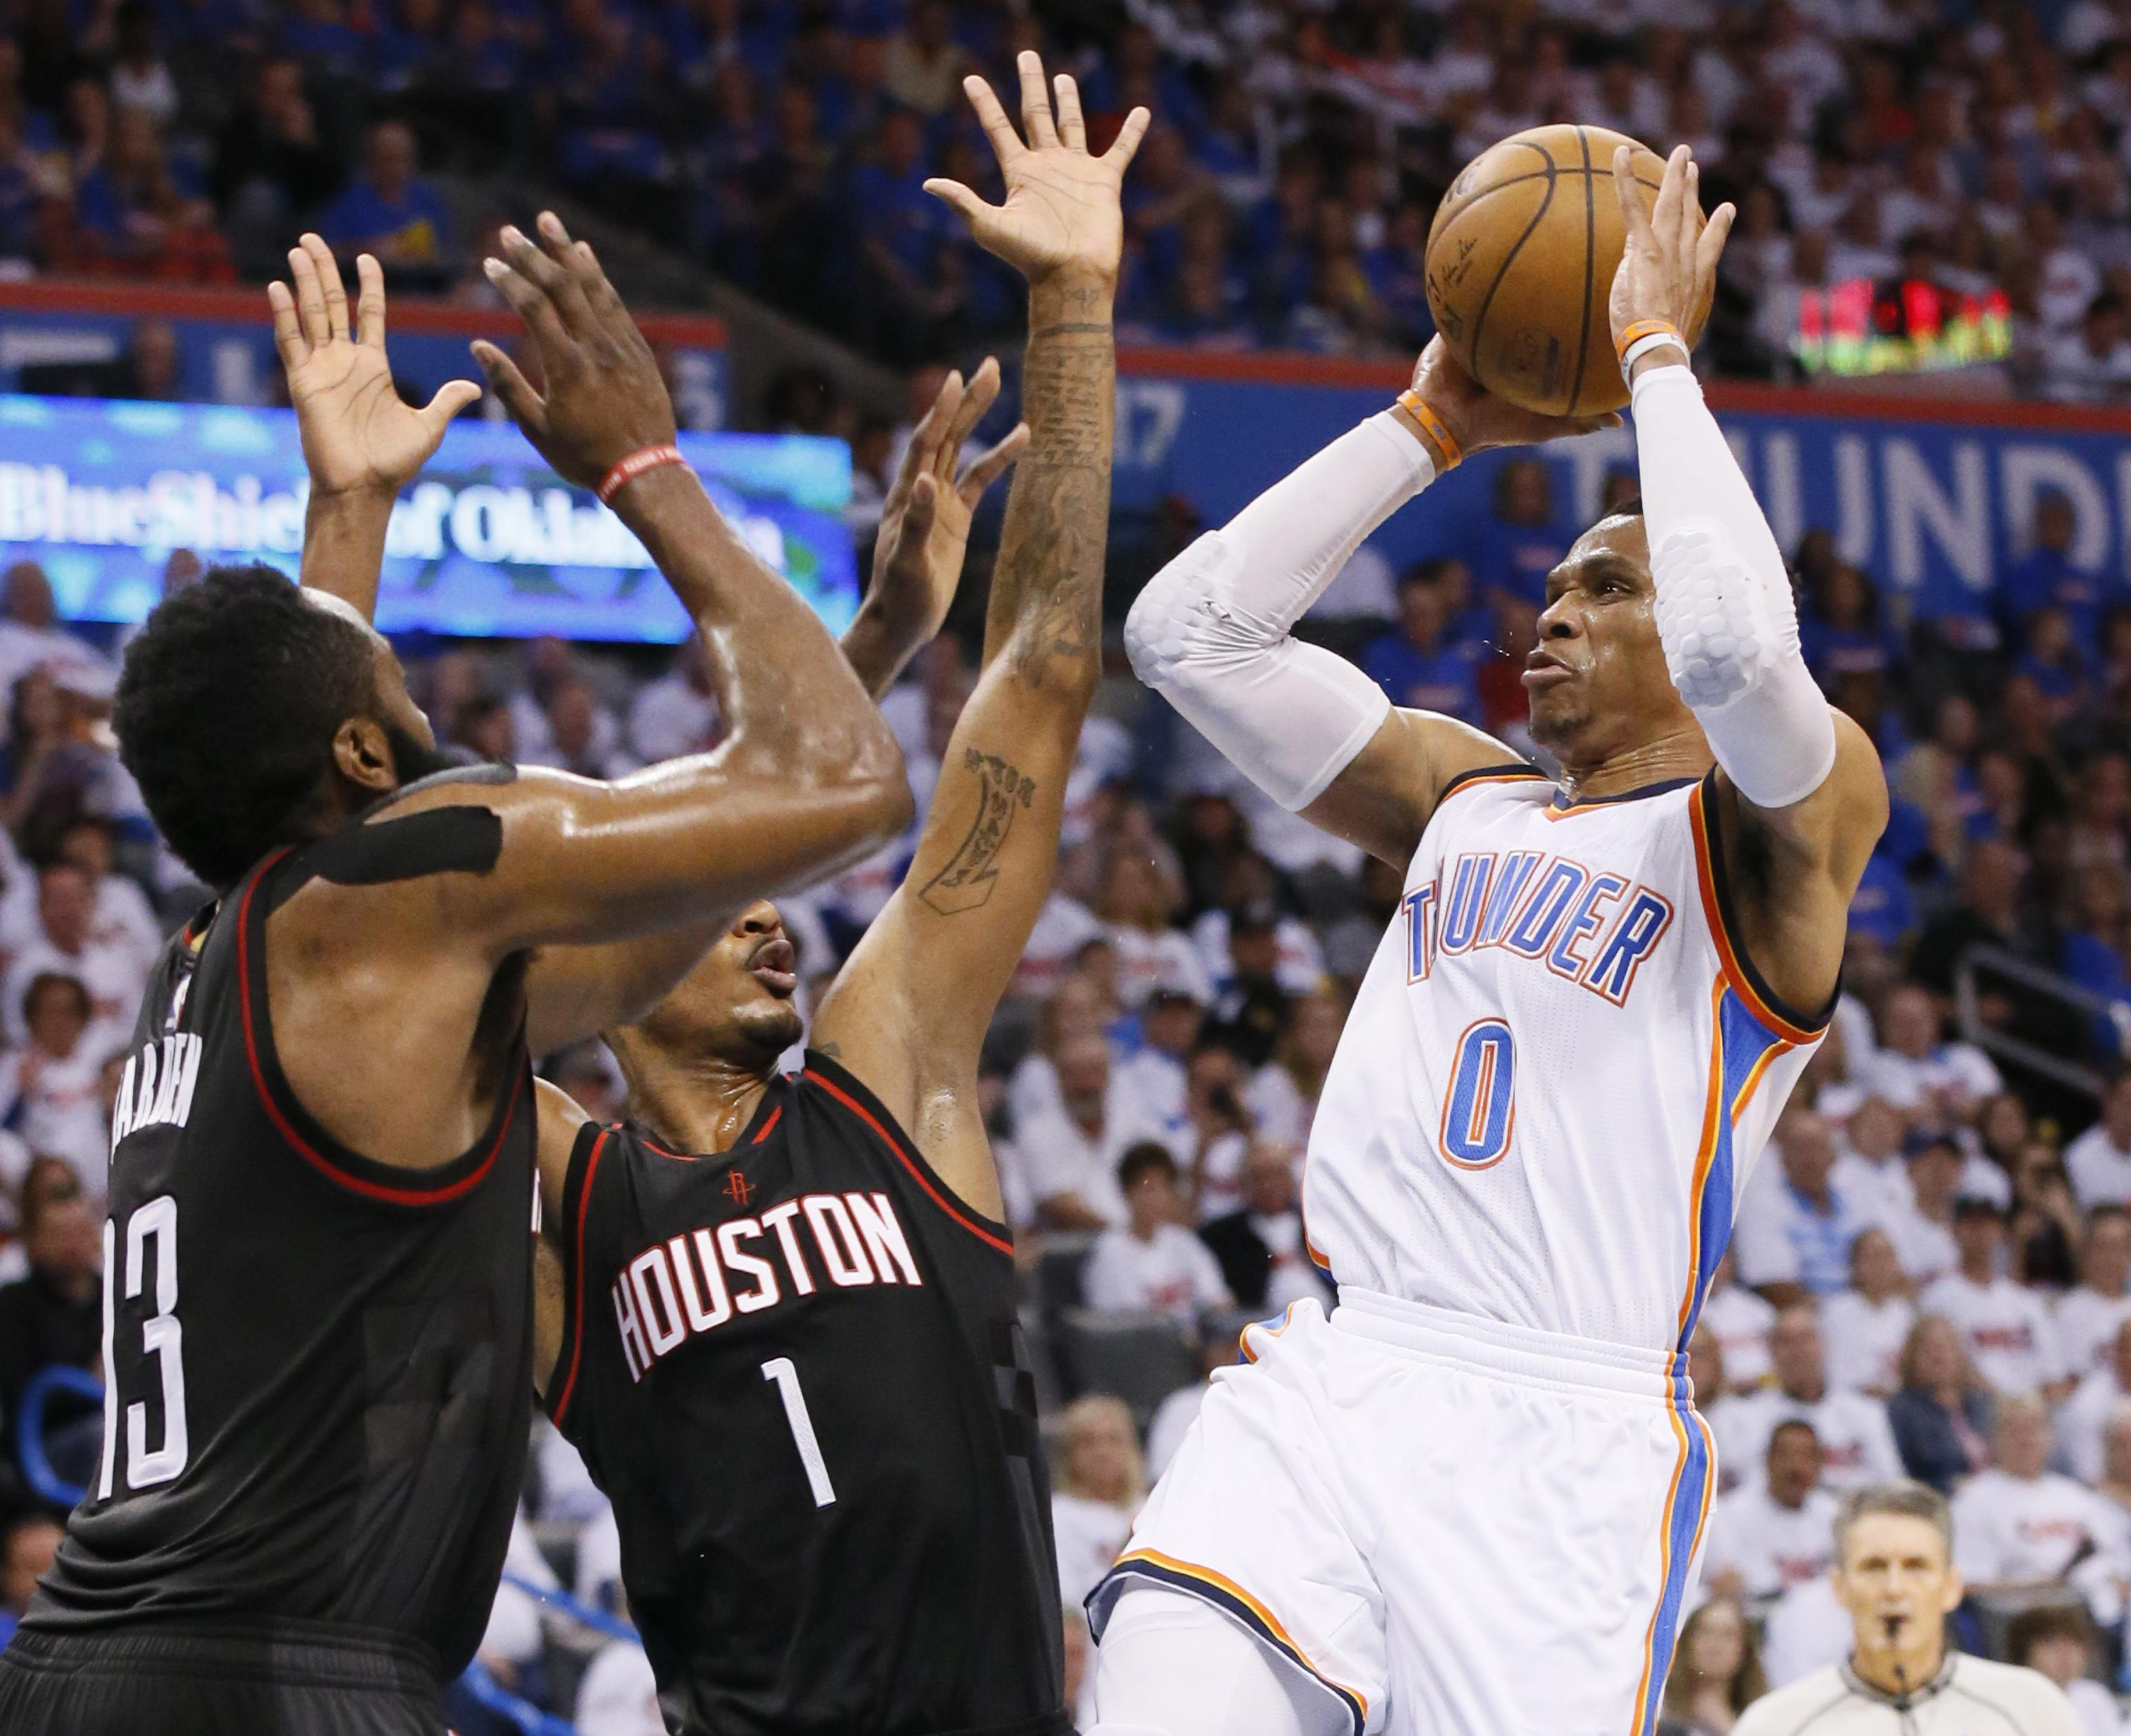 801548b34fd Oklahoma City Thunder guard Russell Westbrook (0) shoots as Houston Rockets  guard James Harden